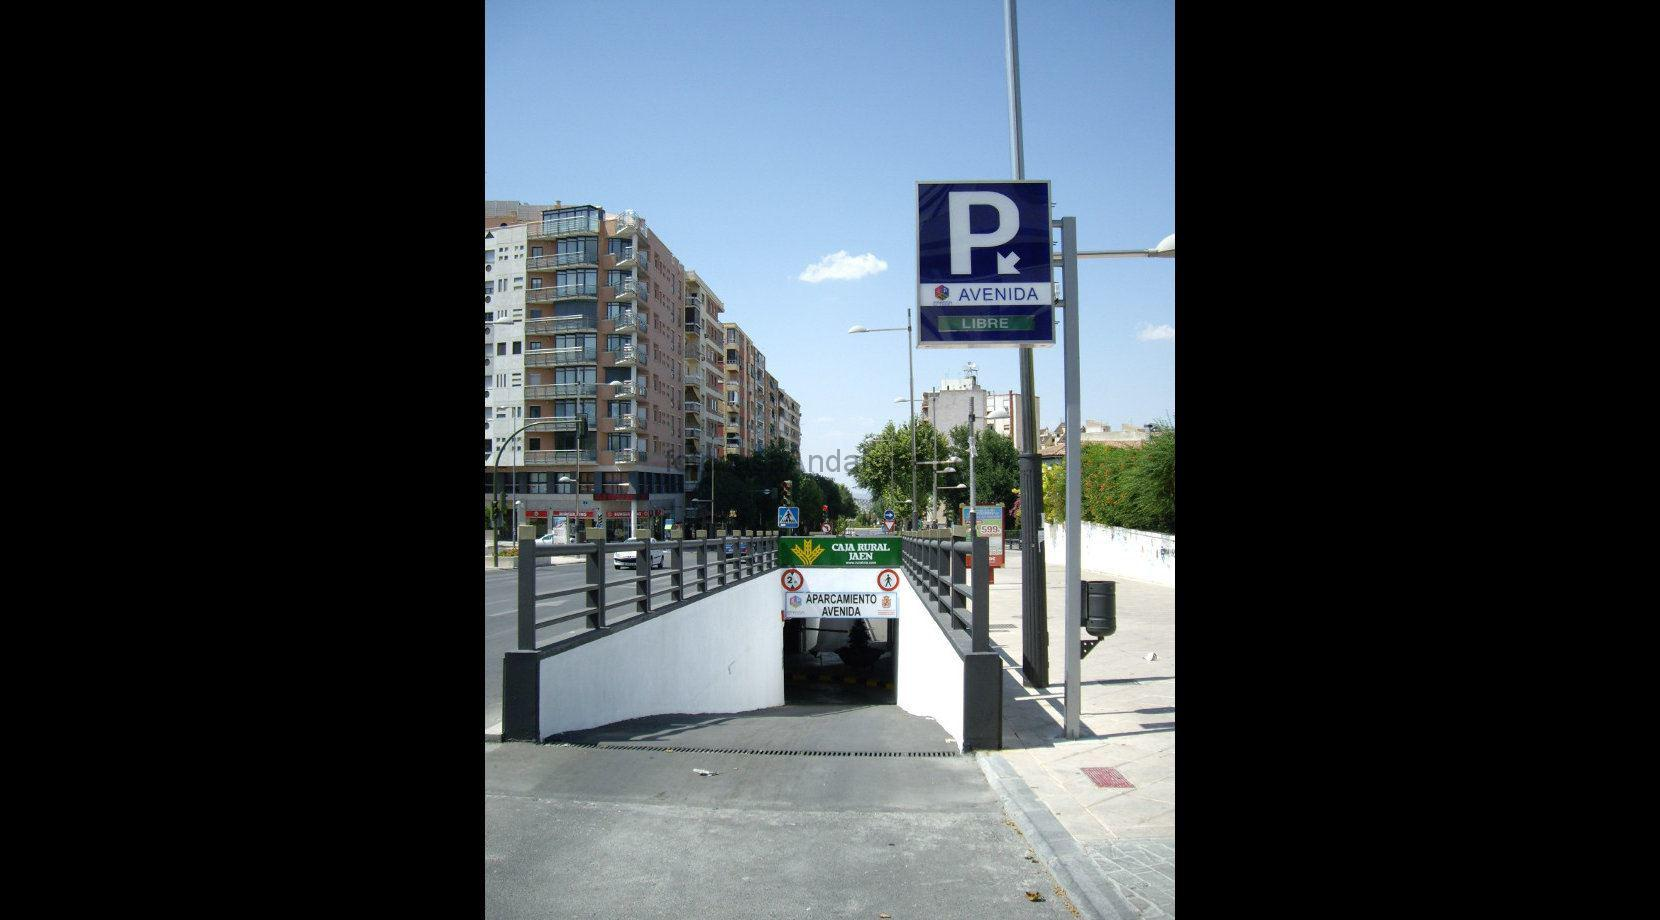 Plaza de parking 6 foto casa andaluc a for Plaza de parking alquiler